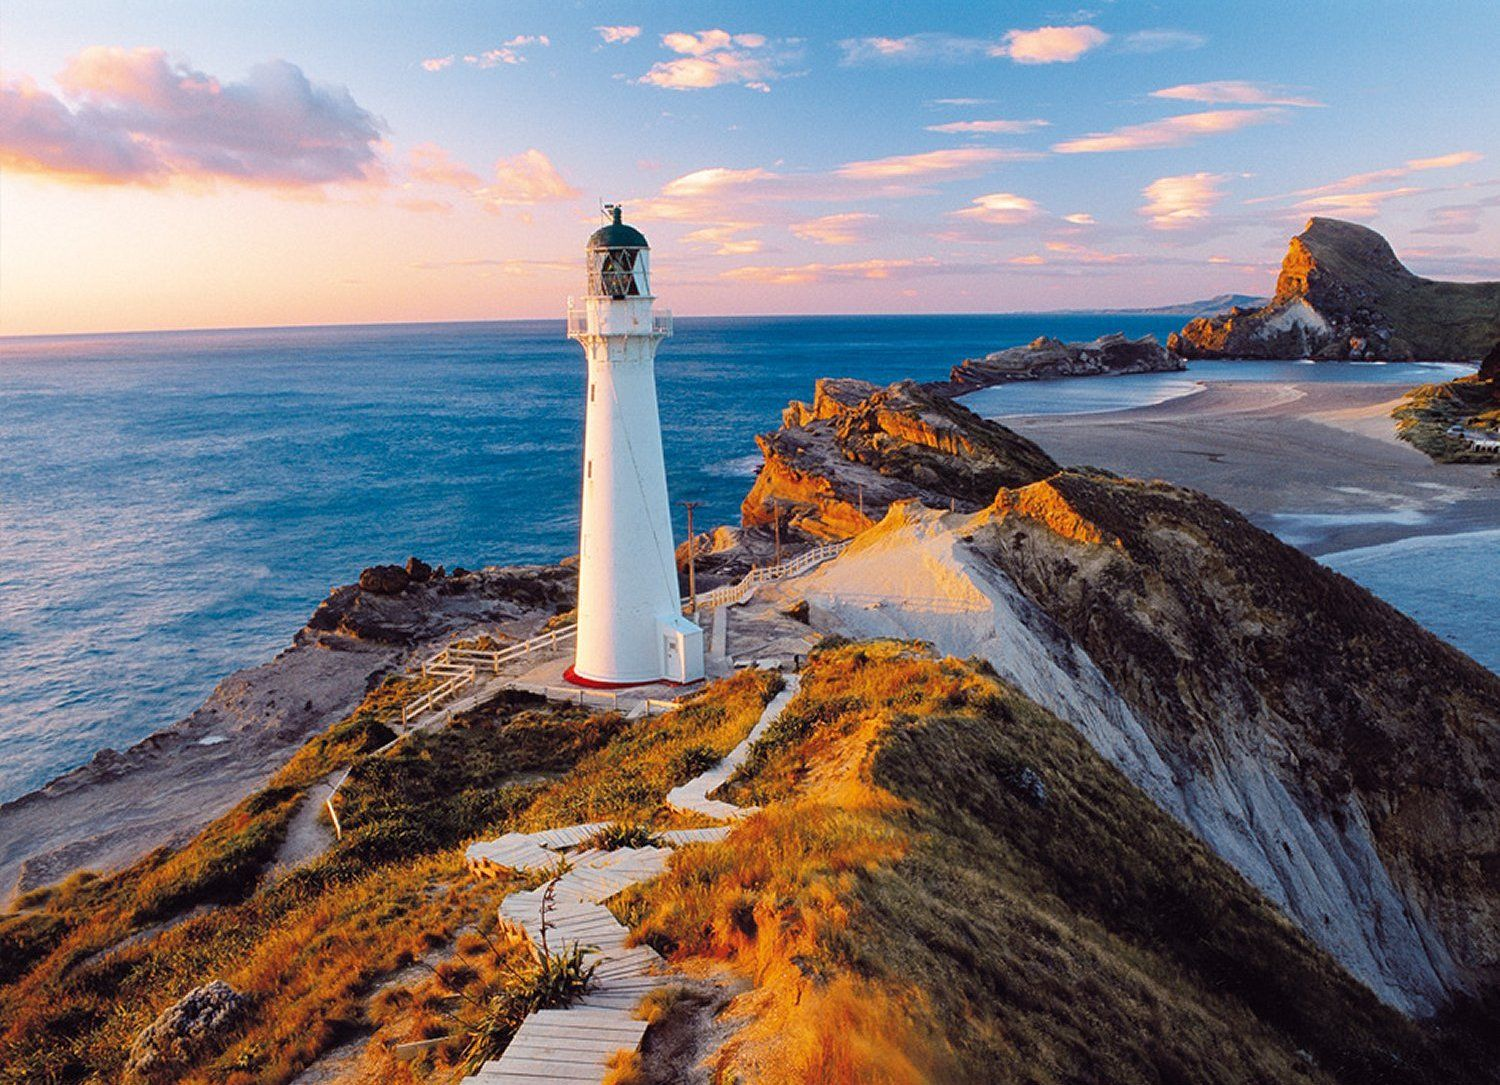 Clementoni Puzzle 1000 Parça New Zeland Lighthouse